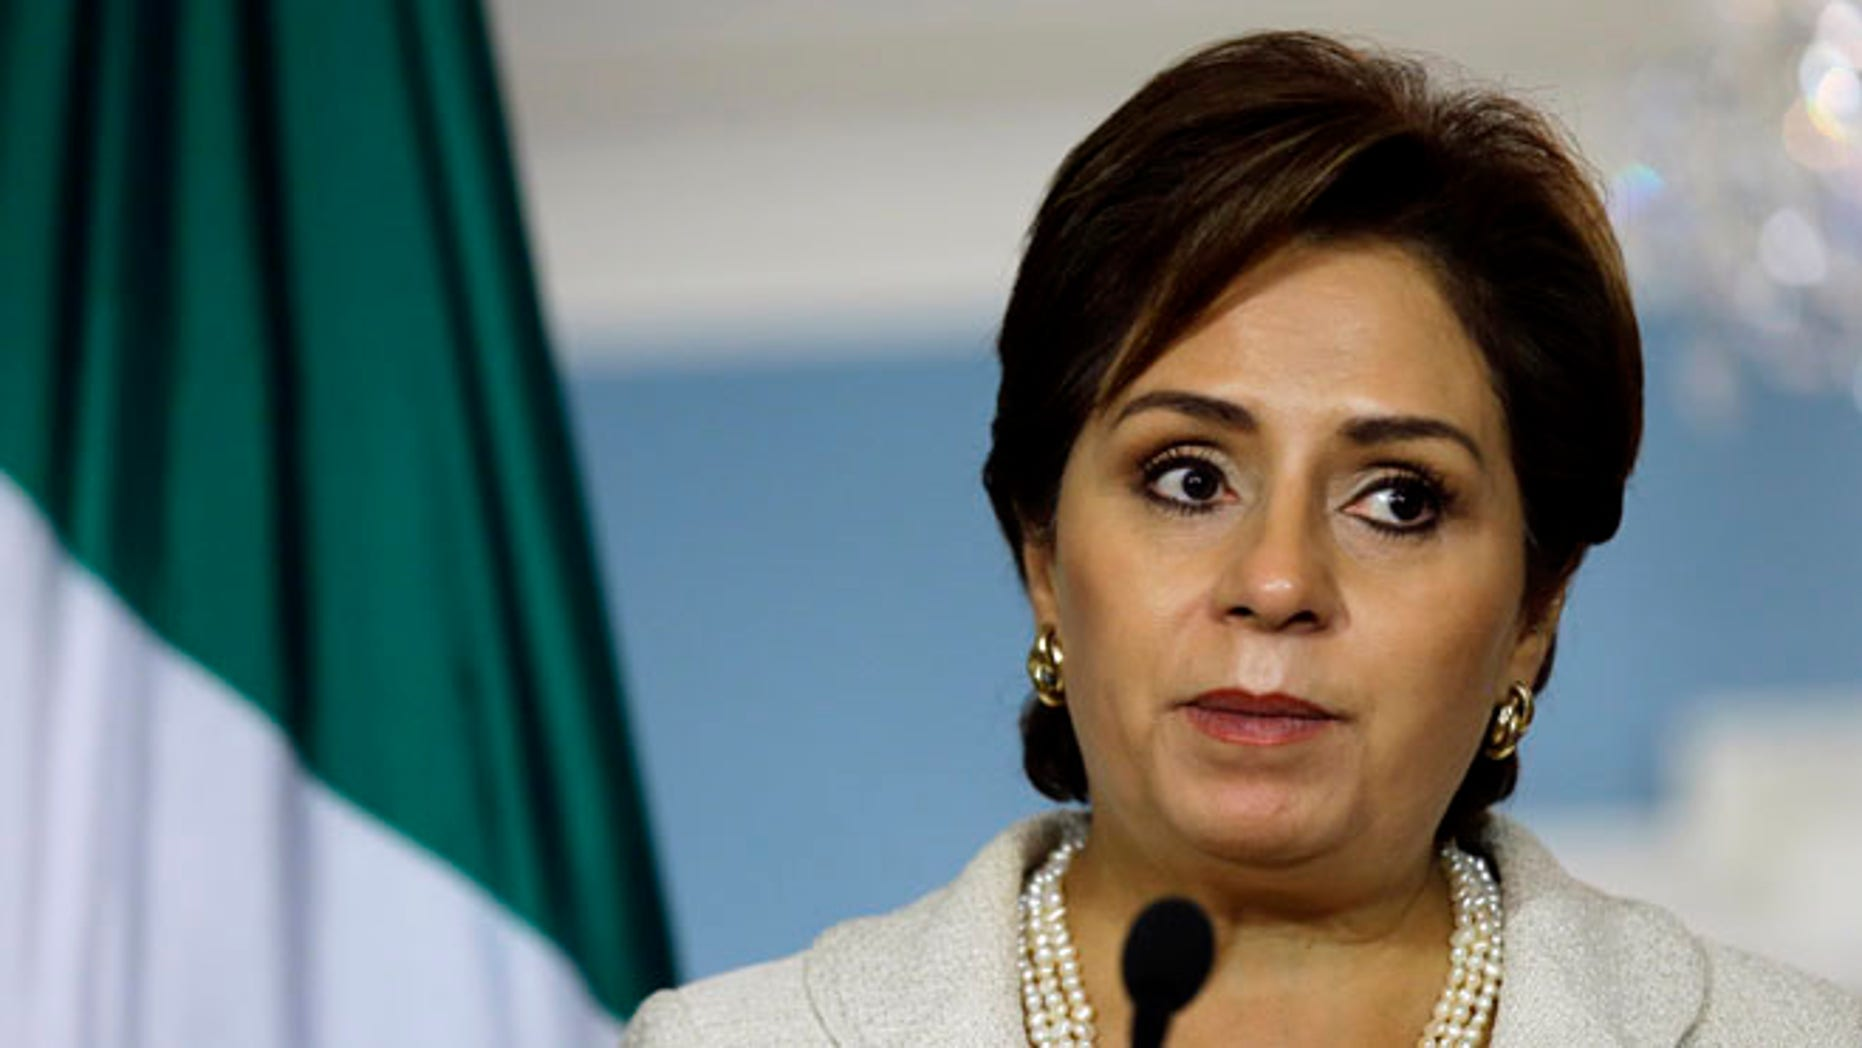 Mexican Foreign Minister Patricia Espinosa in a 2012 file photo.